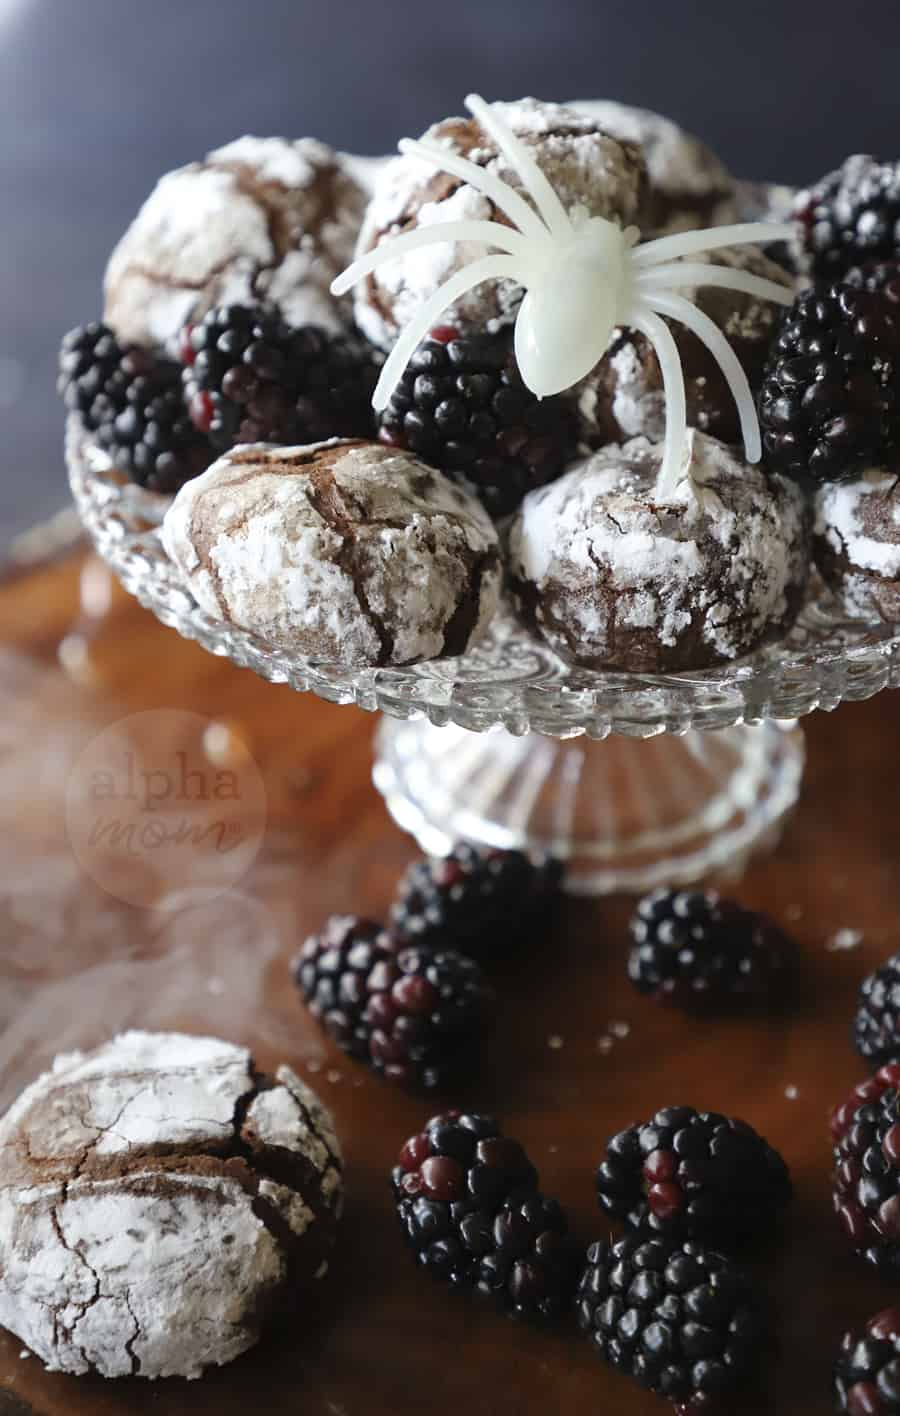 photo of crystal platter filled with Blackberry Chocolate Crackle Cookies and blackberries